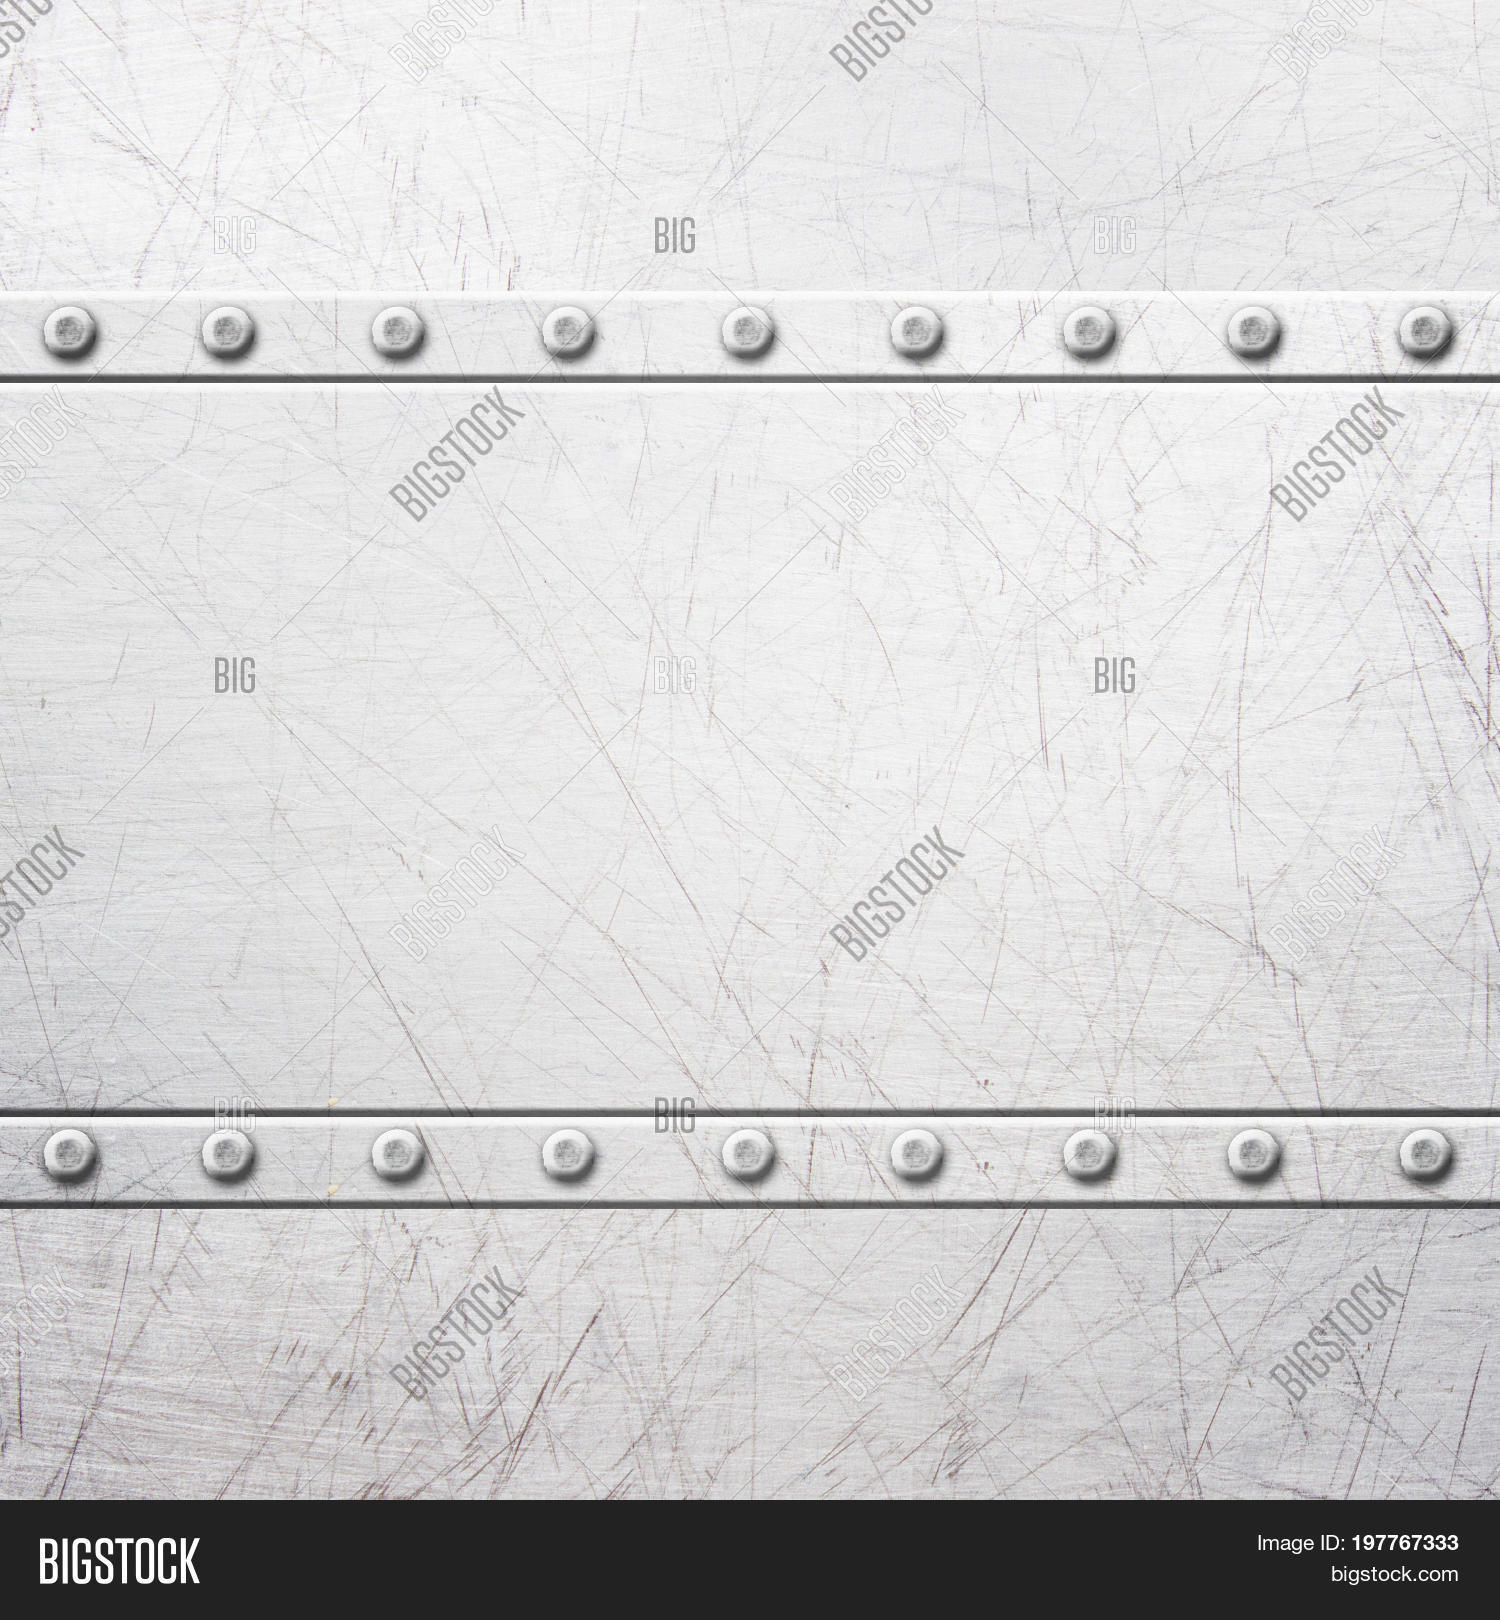 Old Rustic Metal Plates With Rivets Seamless Background Or Texture 3D Illustration